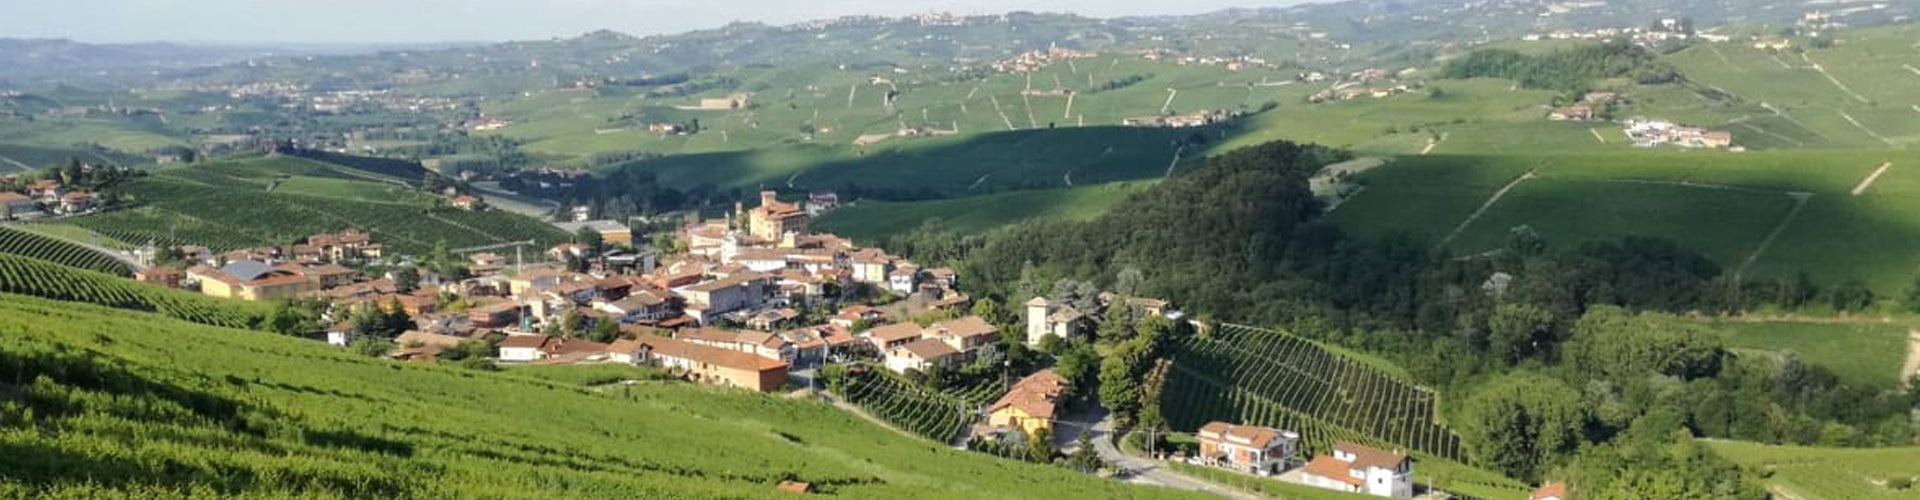 Umani Ronchi Vineyards in the Marche region of Italy